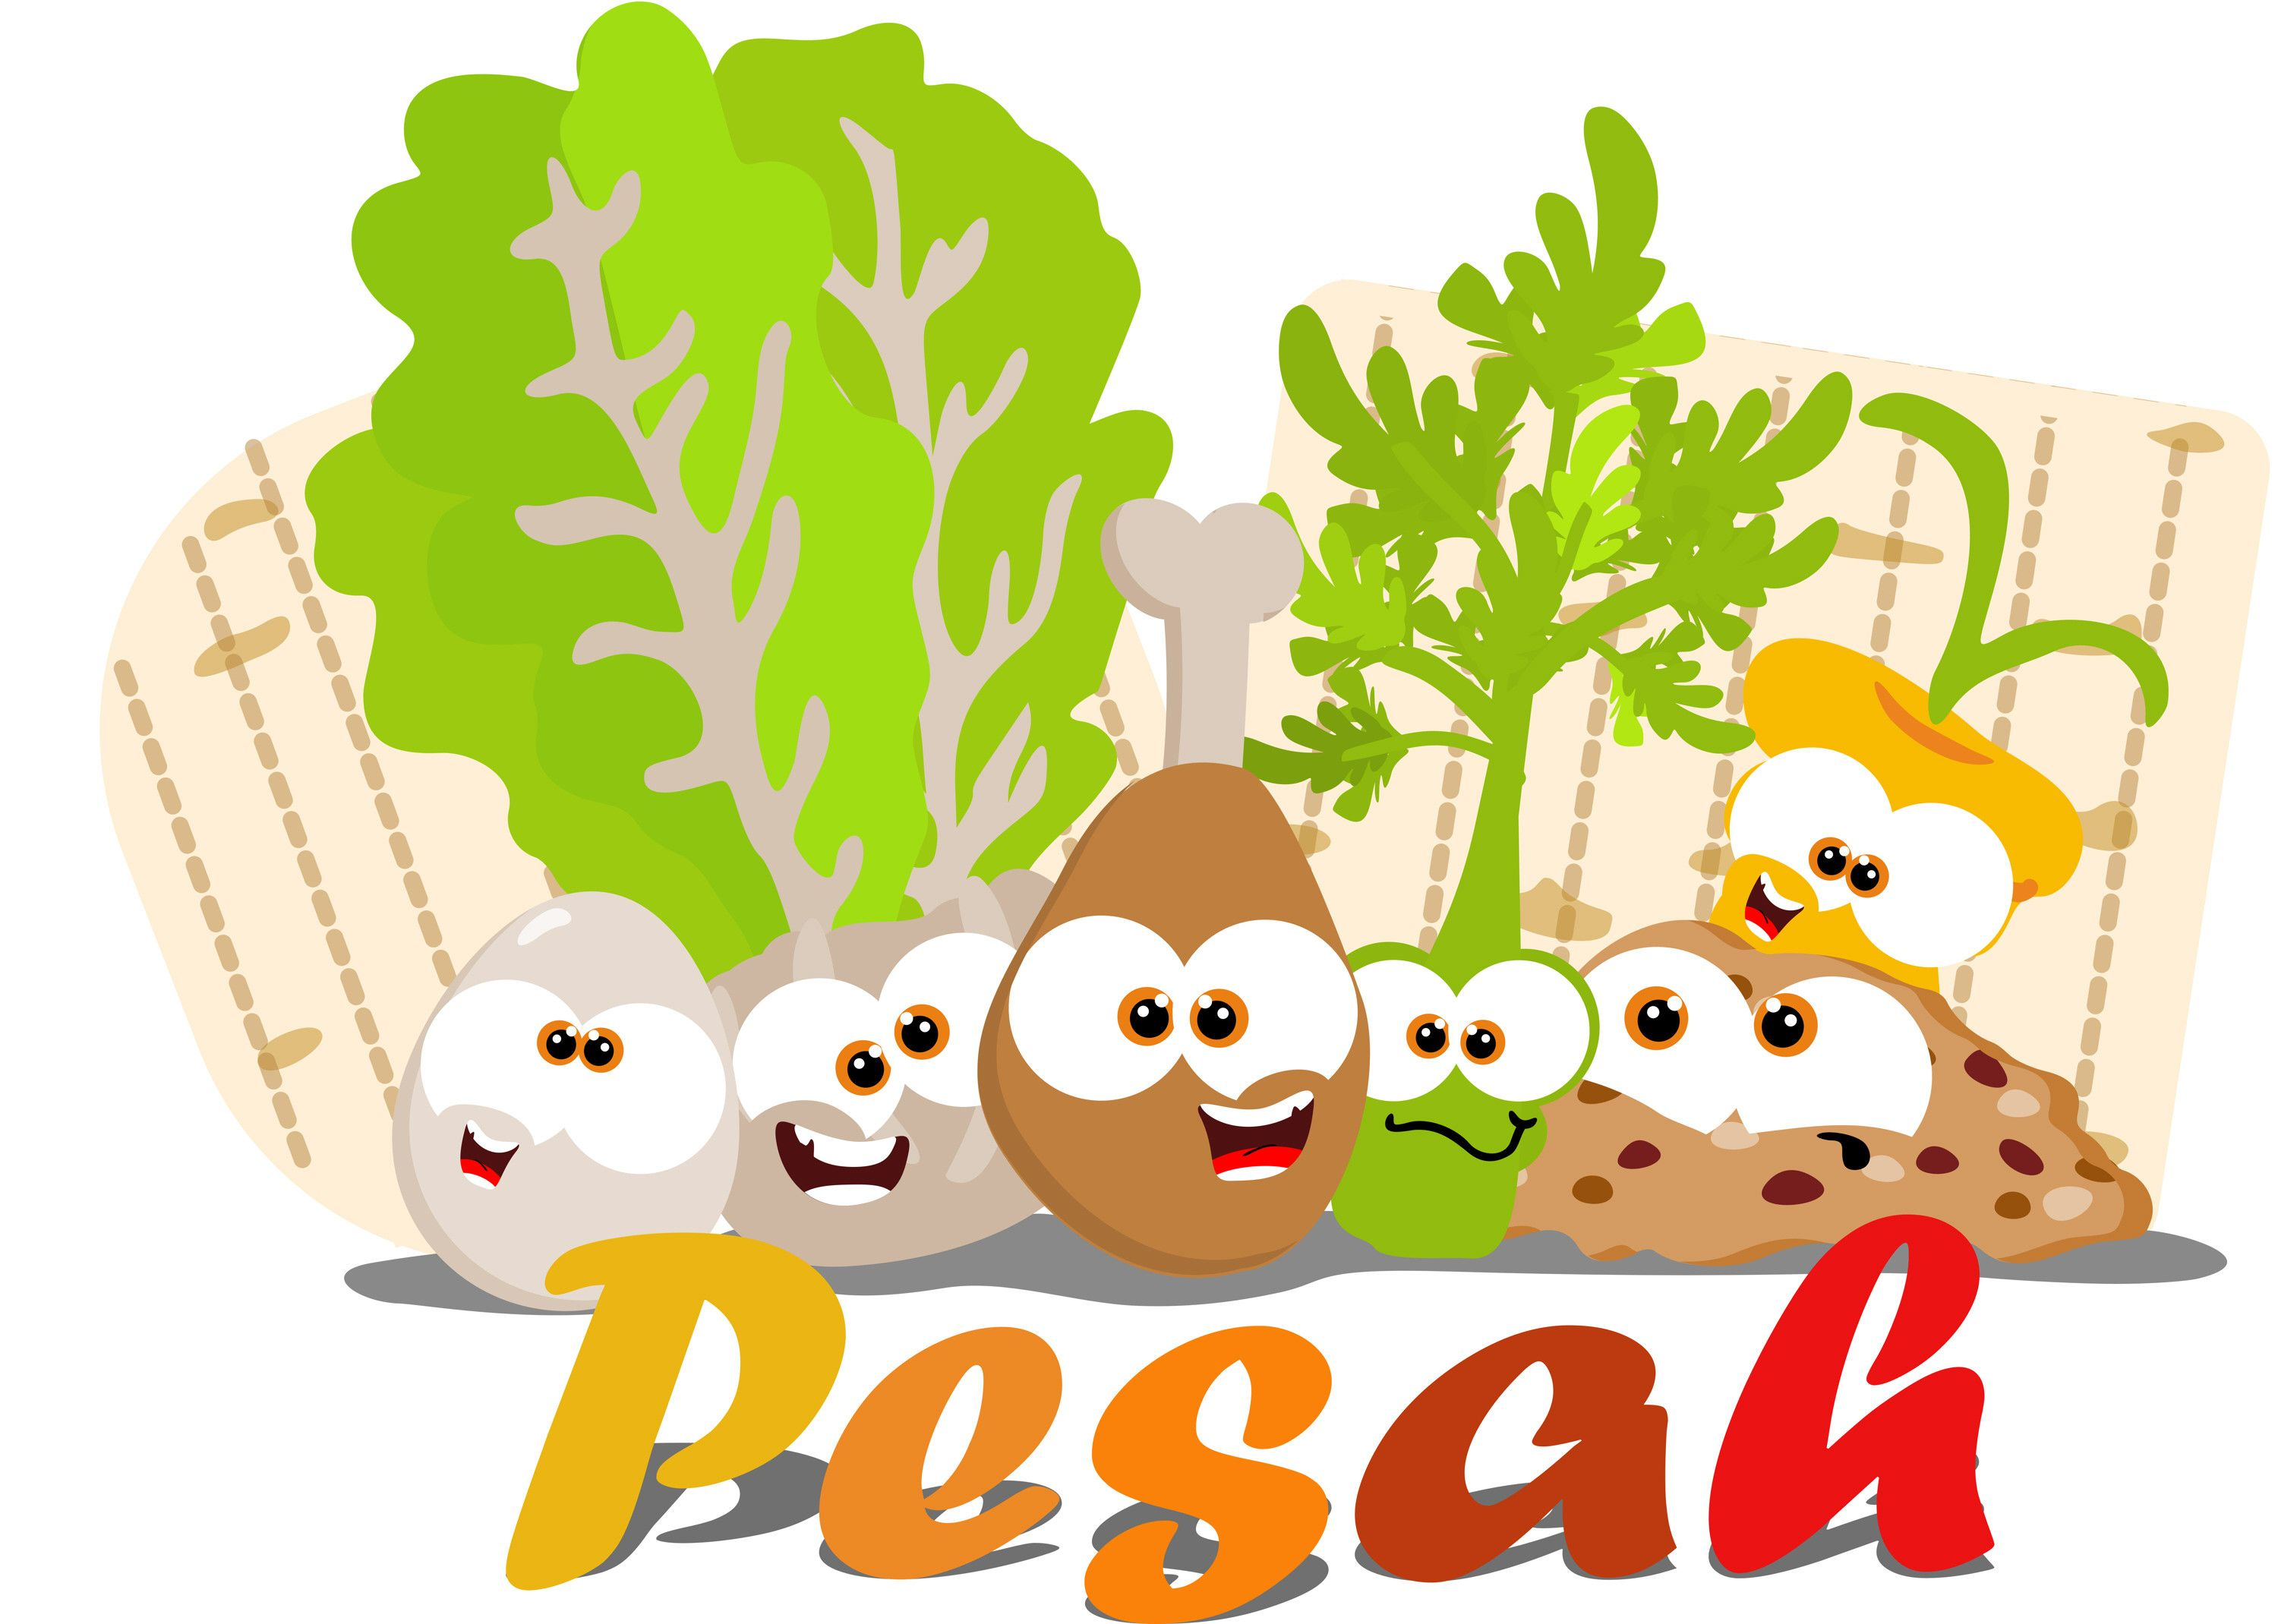 Passover clipart community meal. A playful seder kit